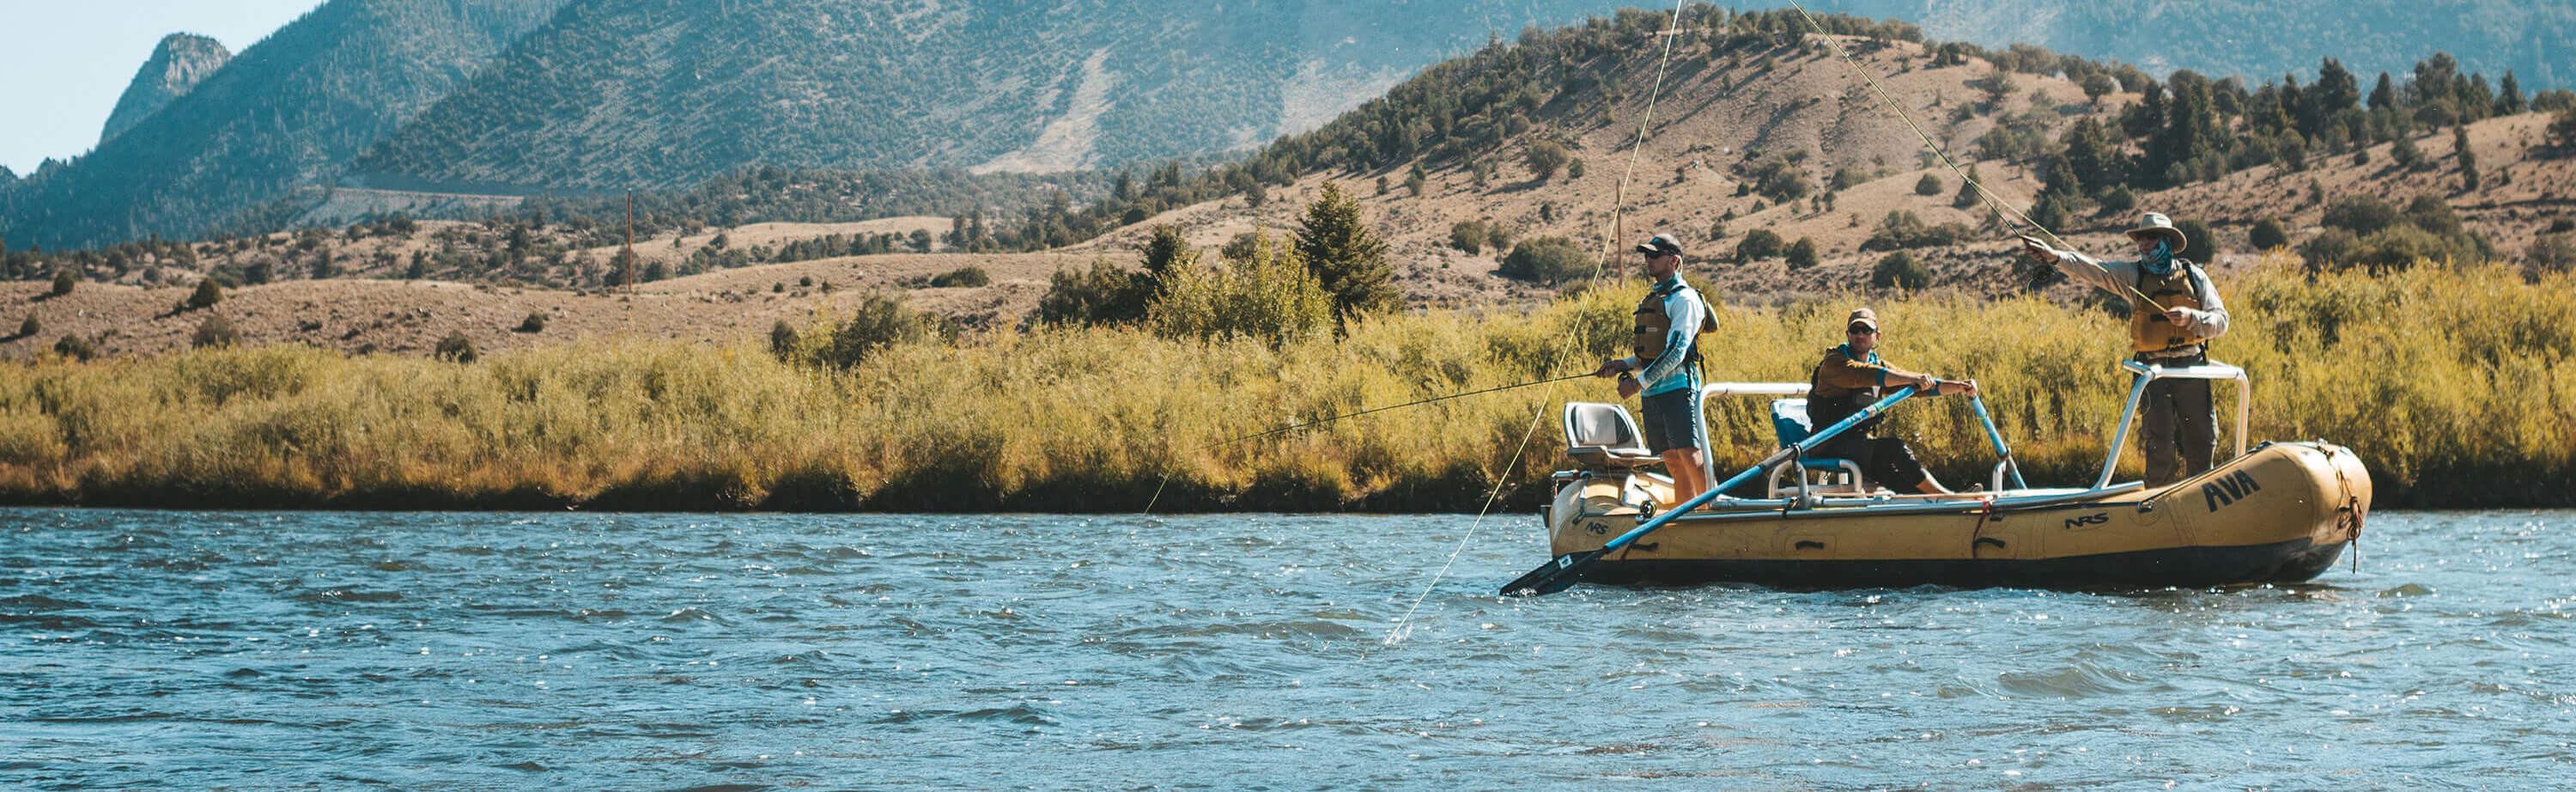 Fly fishing on a raft